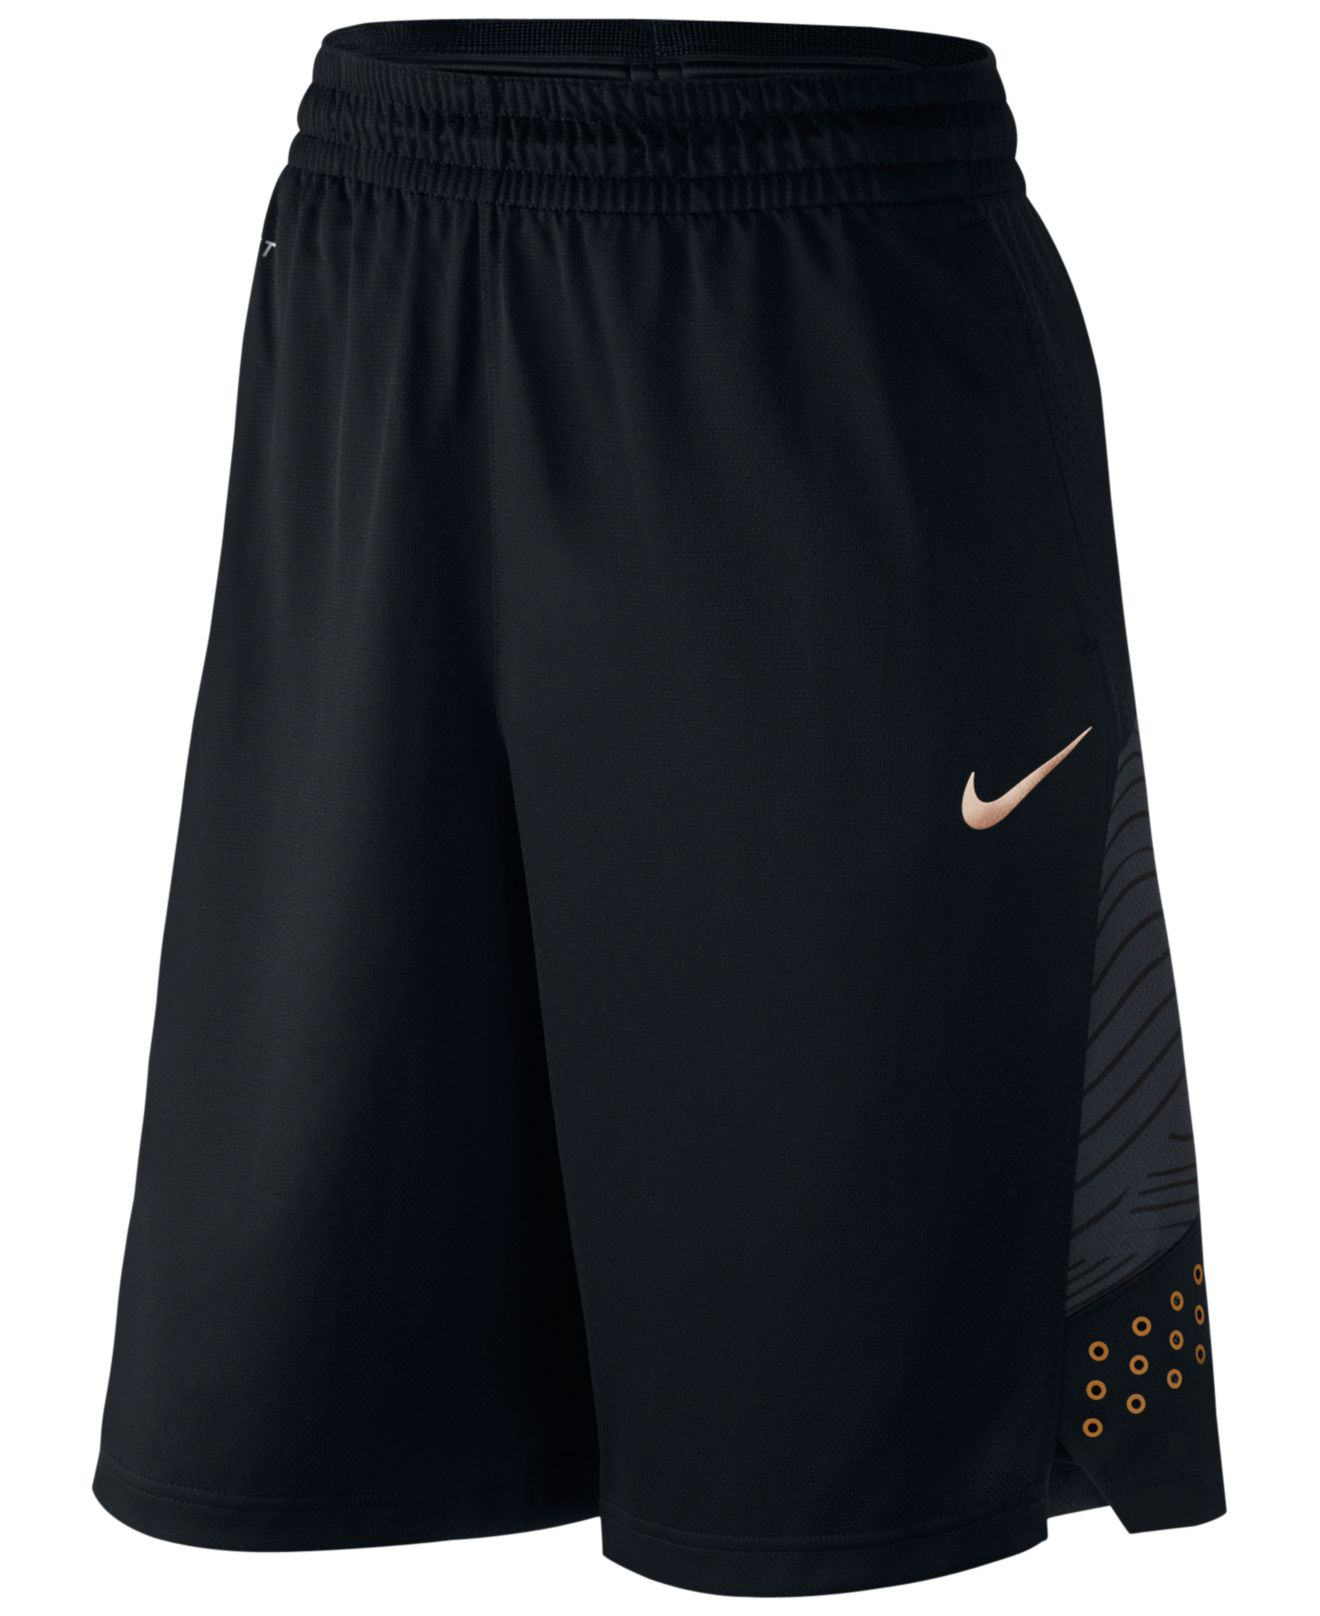 "Nike Kd Hyper Elite Power Dri-fit 11"" Basketball Shorts in ...